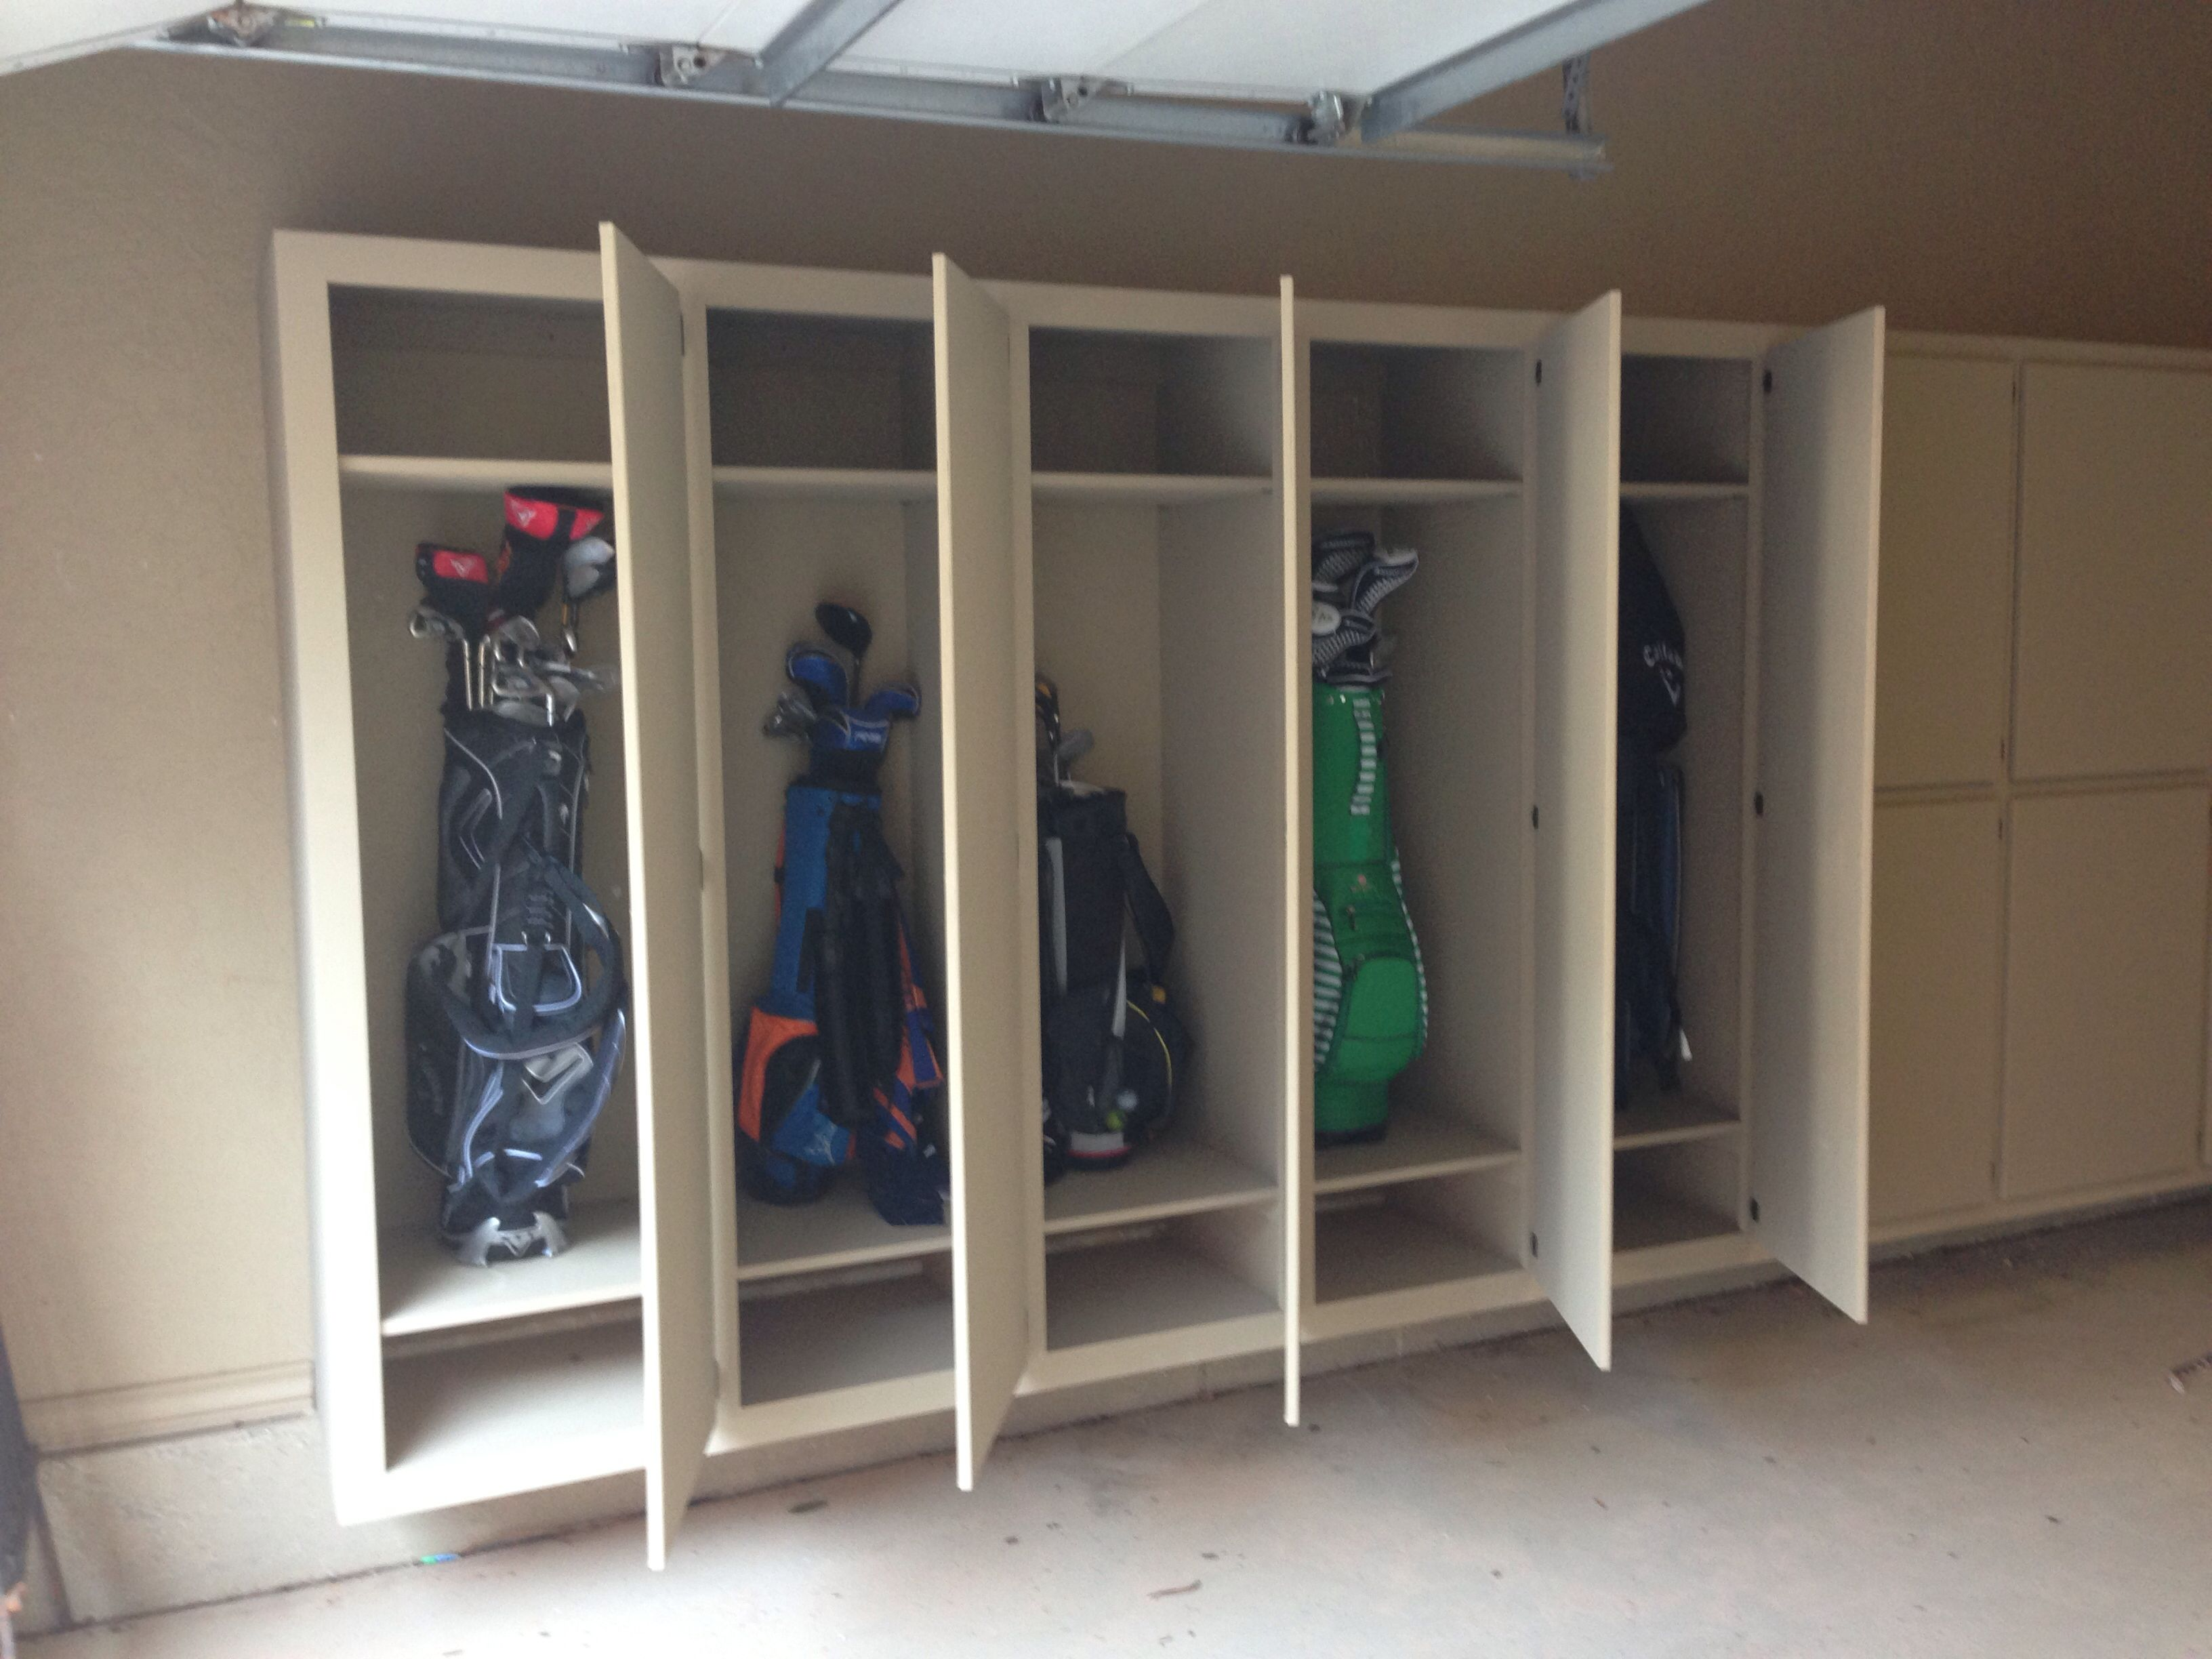 Happy Little Golf Clubs All Tucked Away In Garage Cabinets Yay For Organization Garage Lockers Garage Cabinets Garage Decor